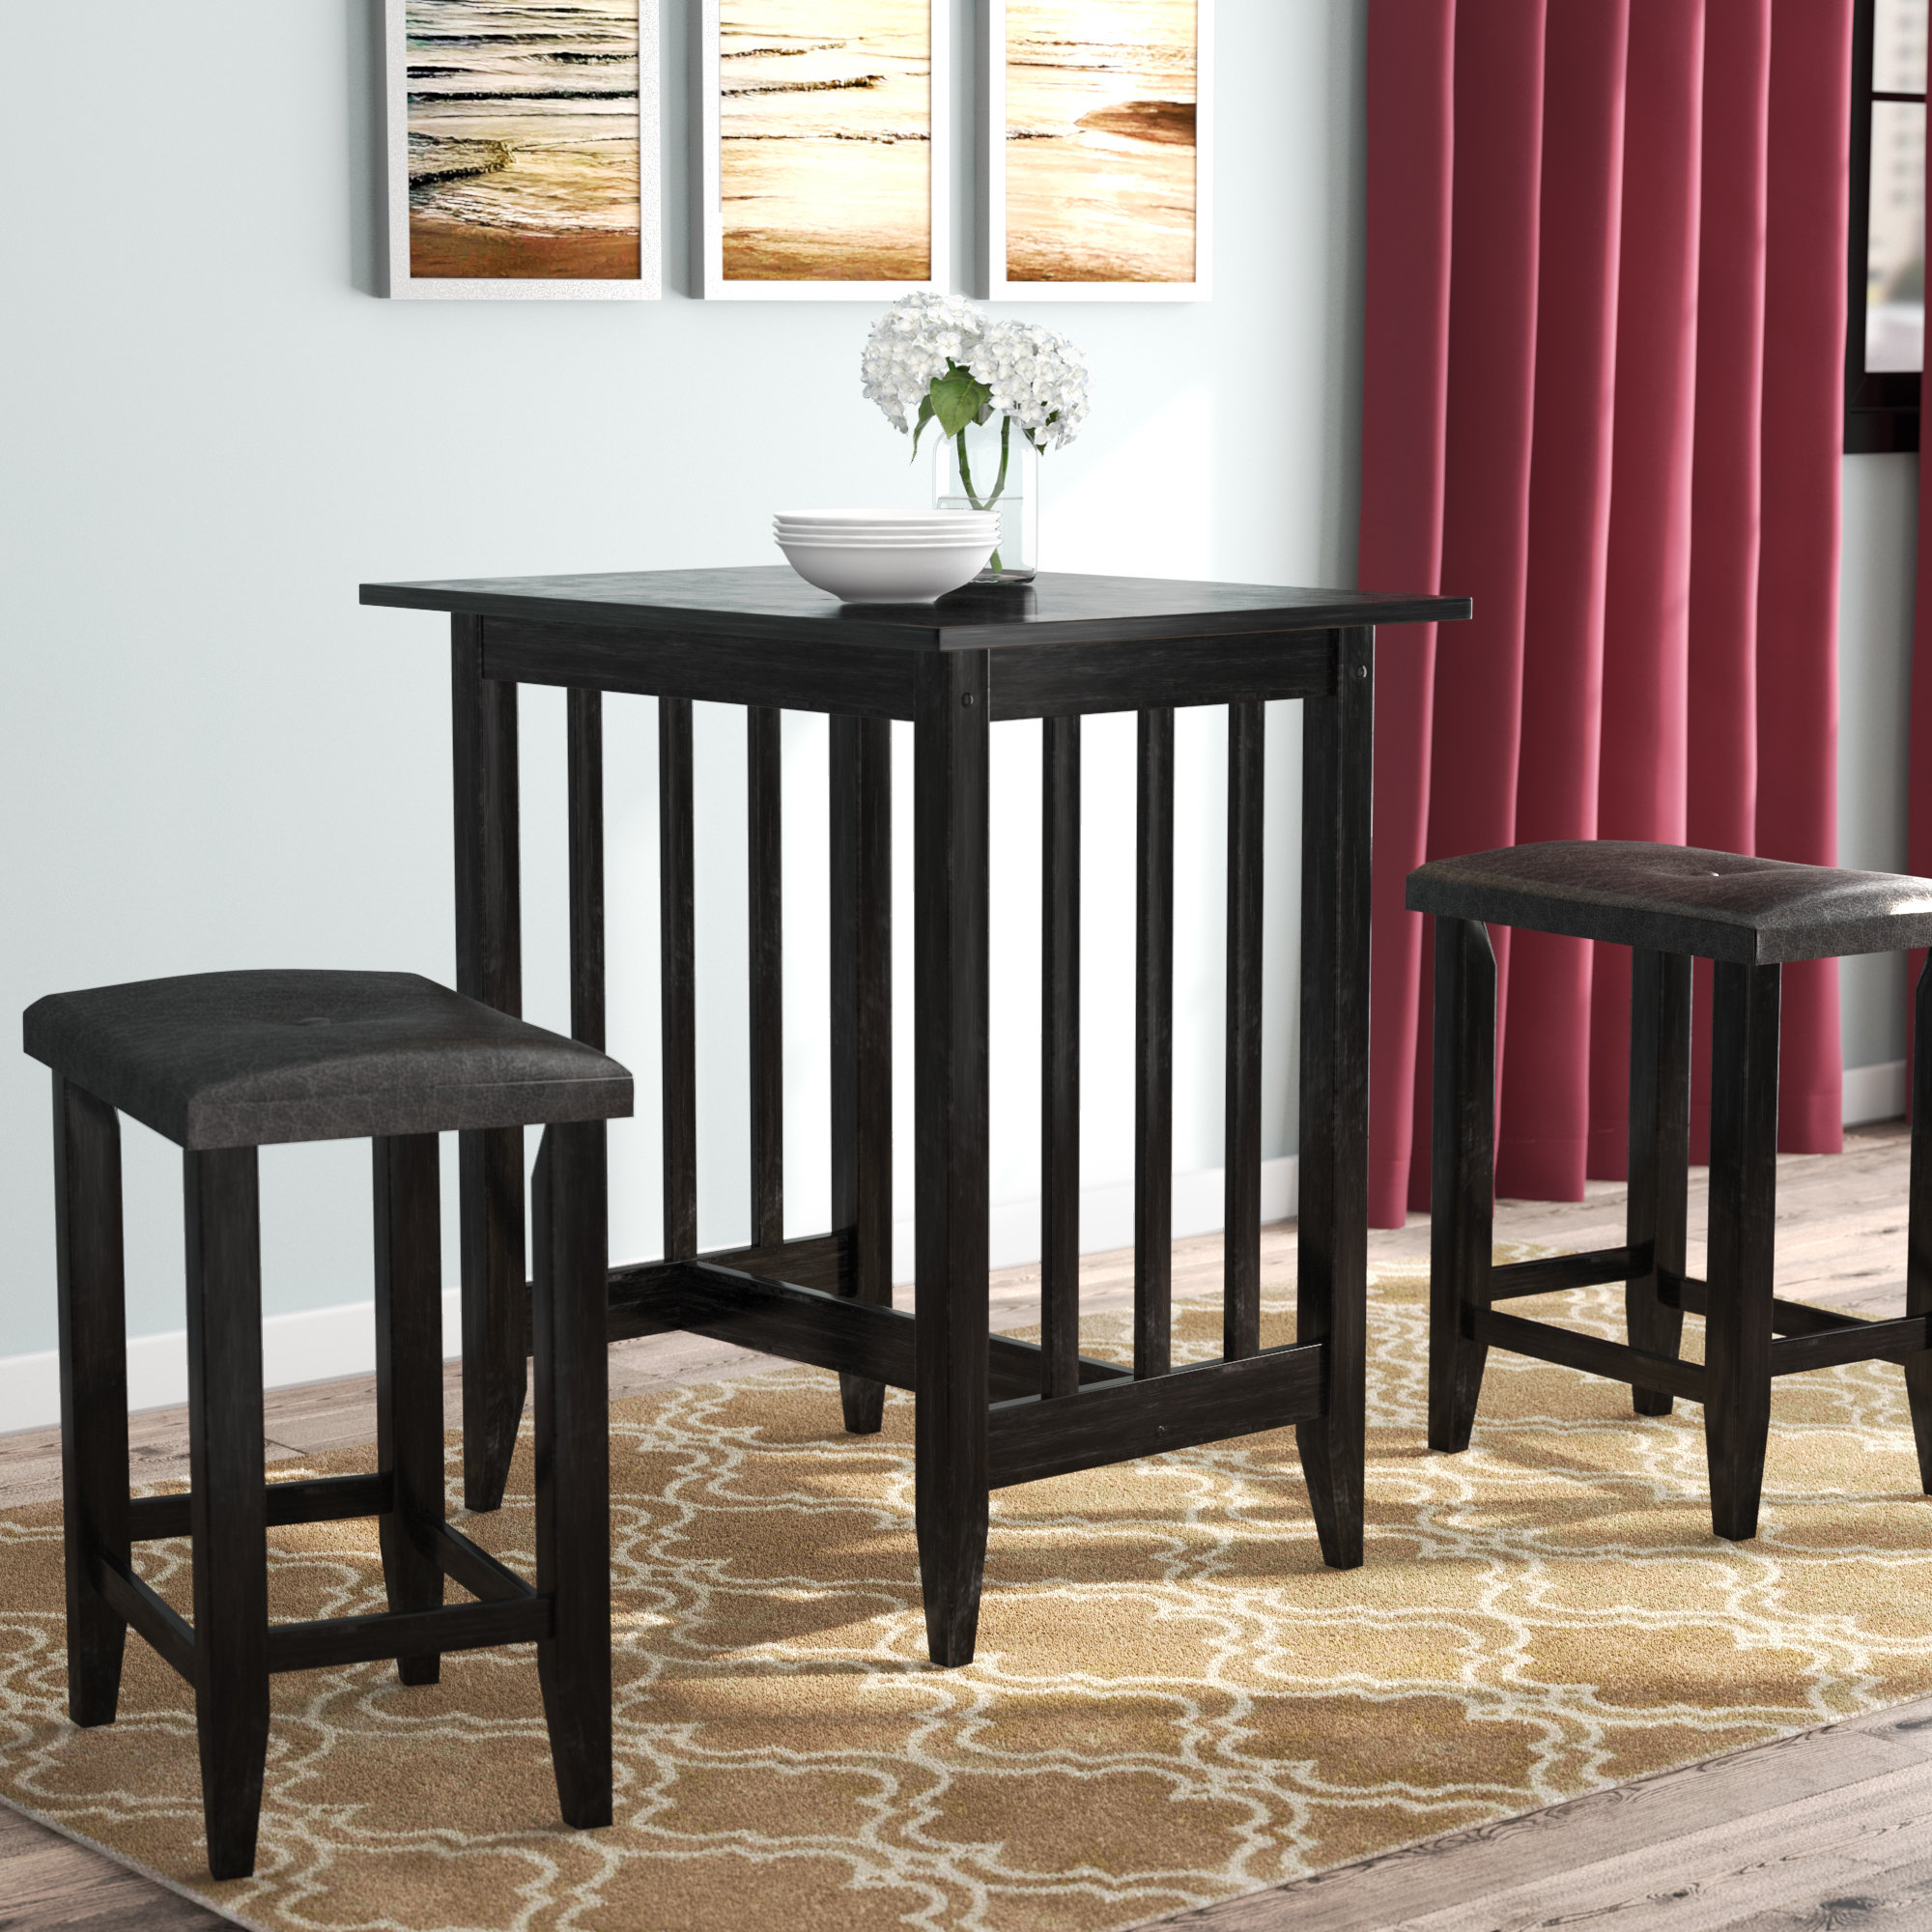 Hood Canal 3 Piece Dining Sets Intended For Most Popular Andover Mills Richland 3 Piece Counter Height Pub Table Set (View 6 of 25)